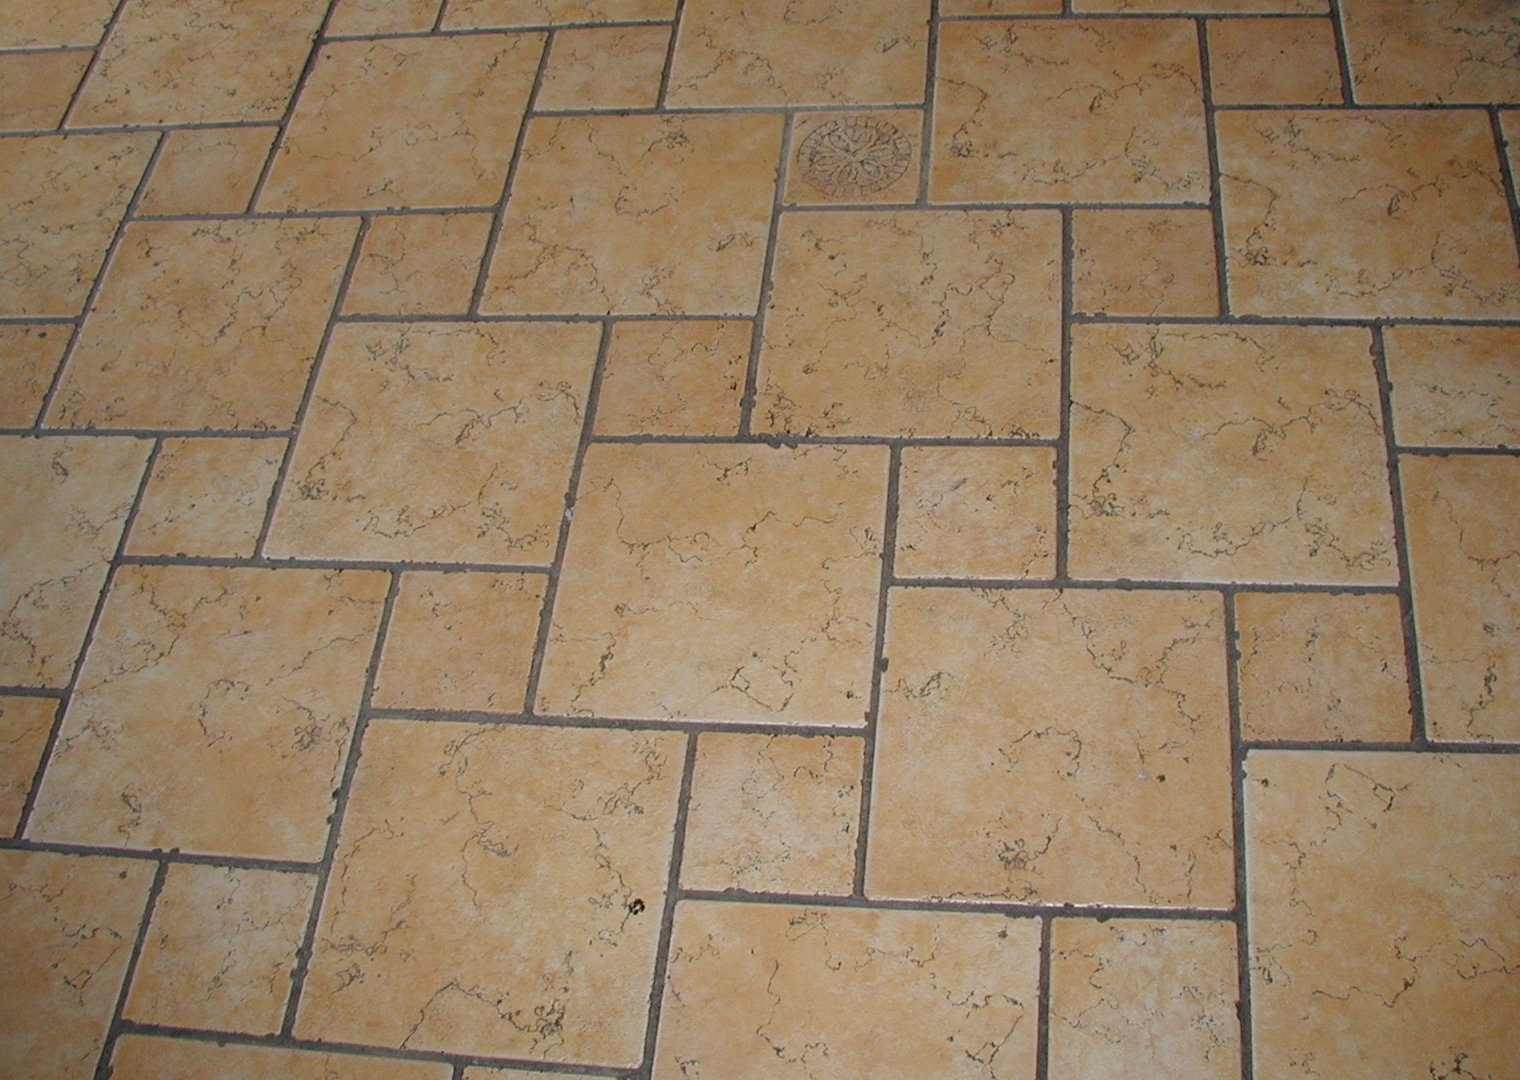 Tile simple english wikipedia the free encyclopedia for Hard floor tiles